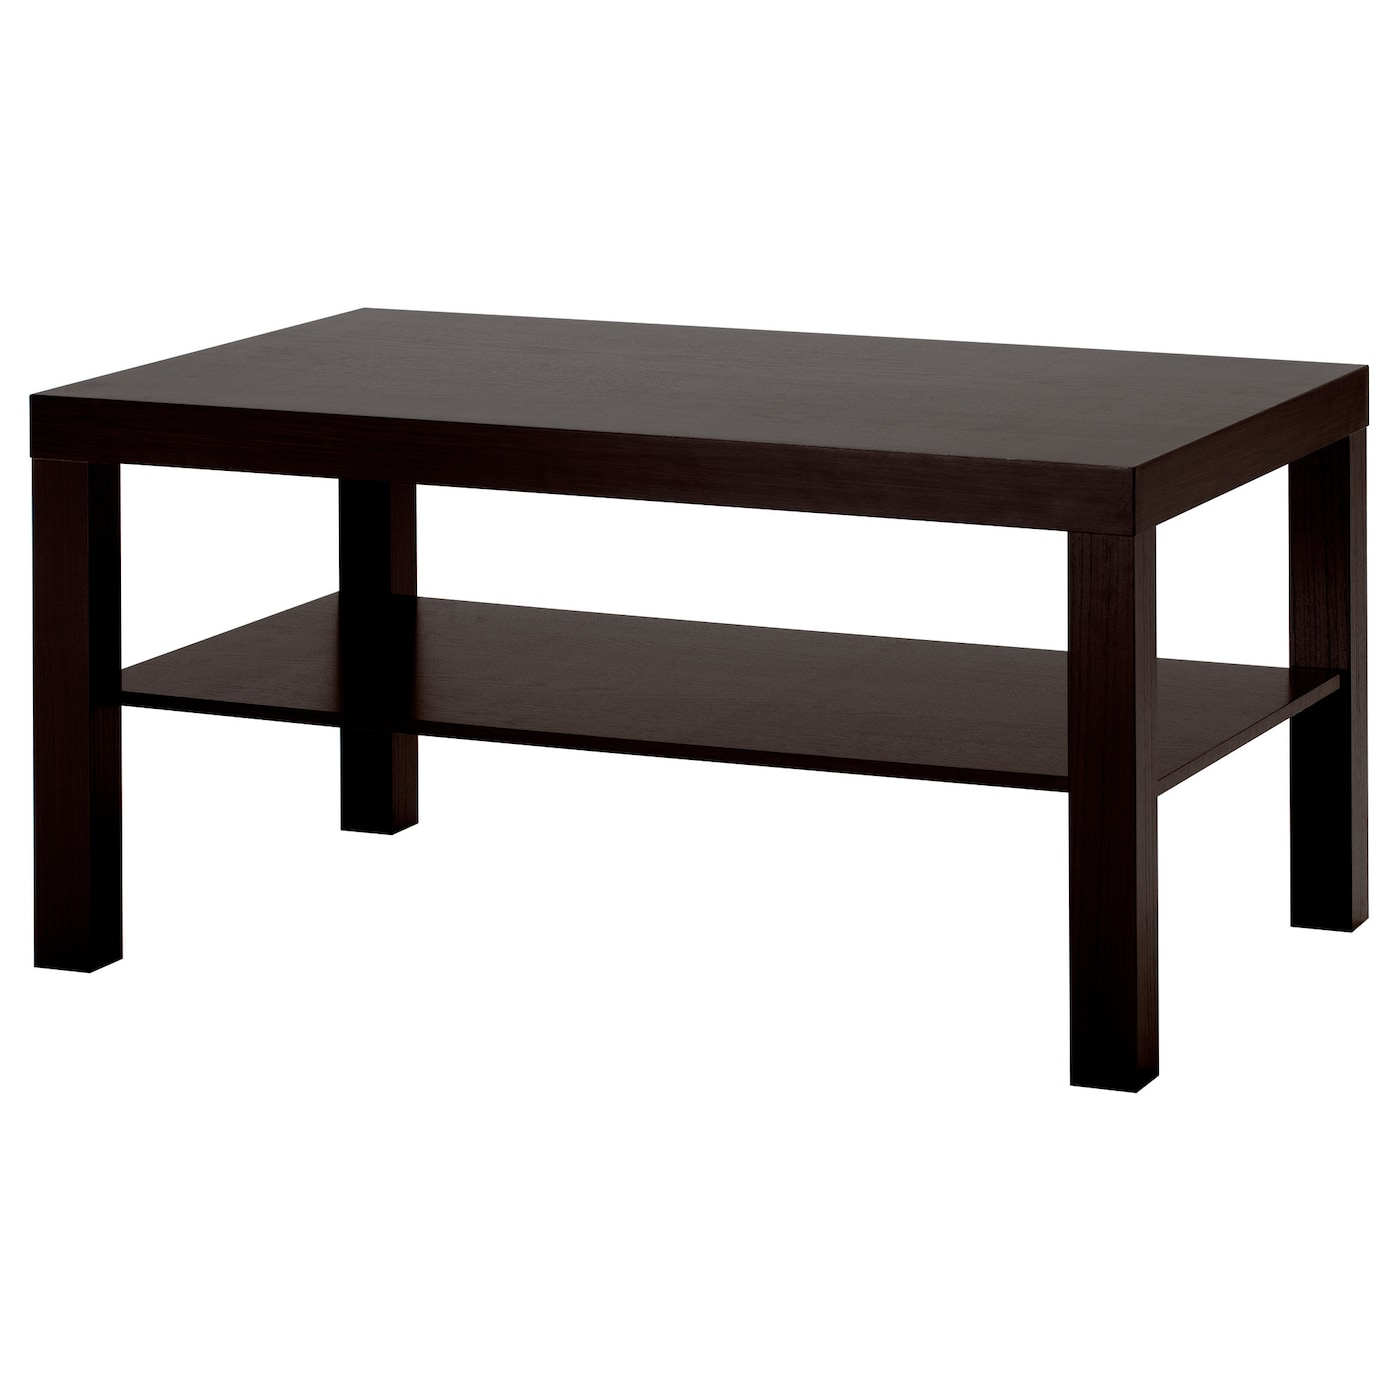 lack table basse brun noir 90x55 cm ikea. Black Bedroom Furniture Sets. Home Design Ideas